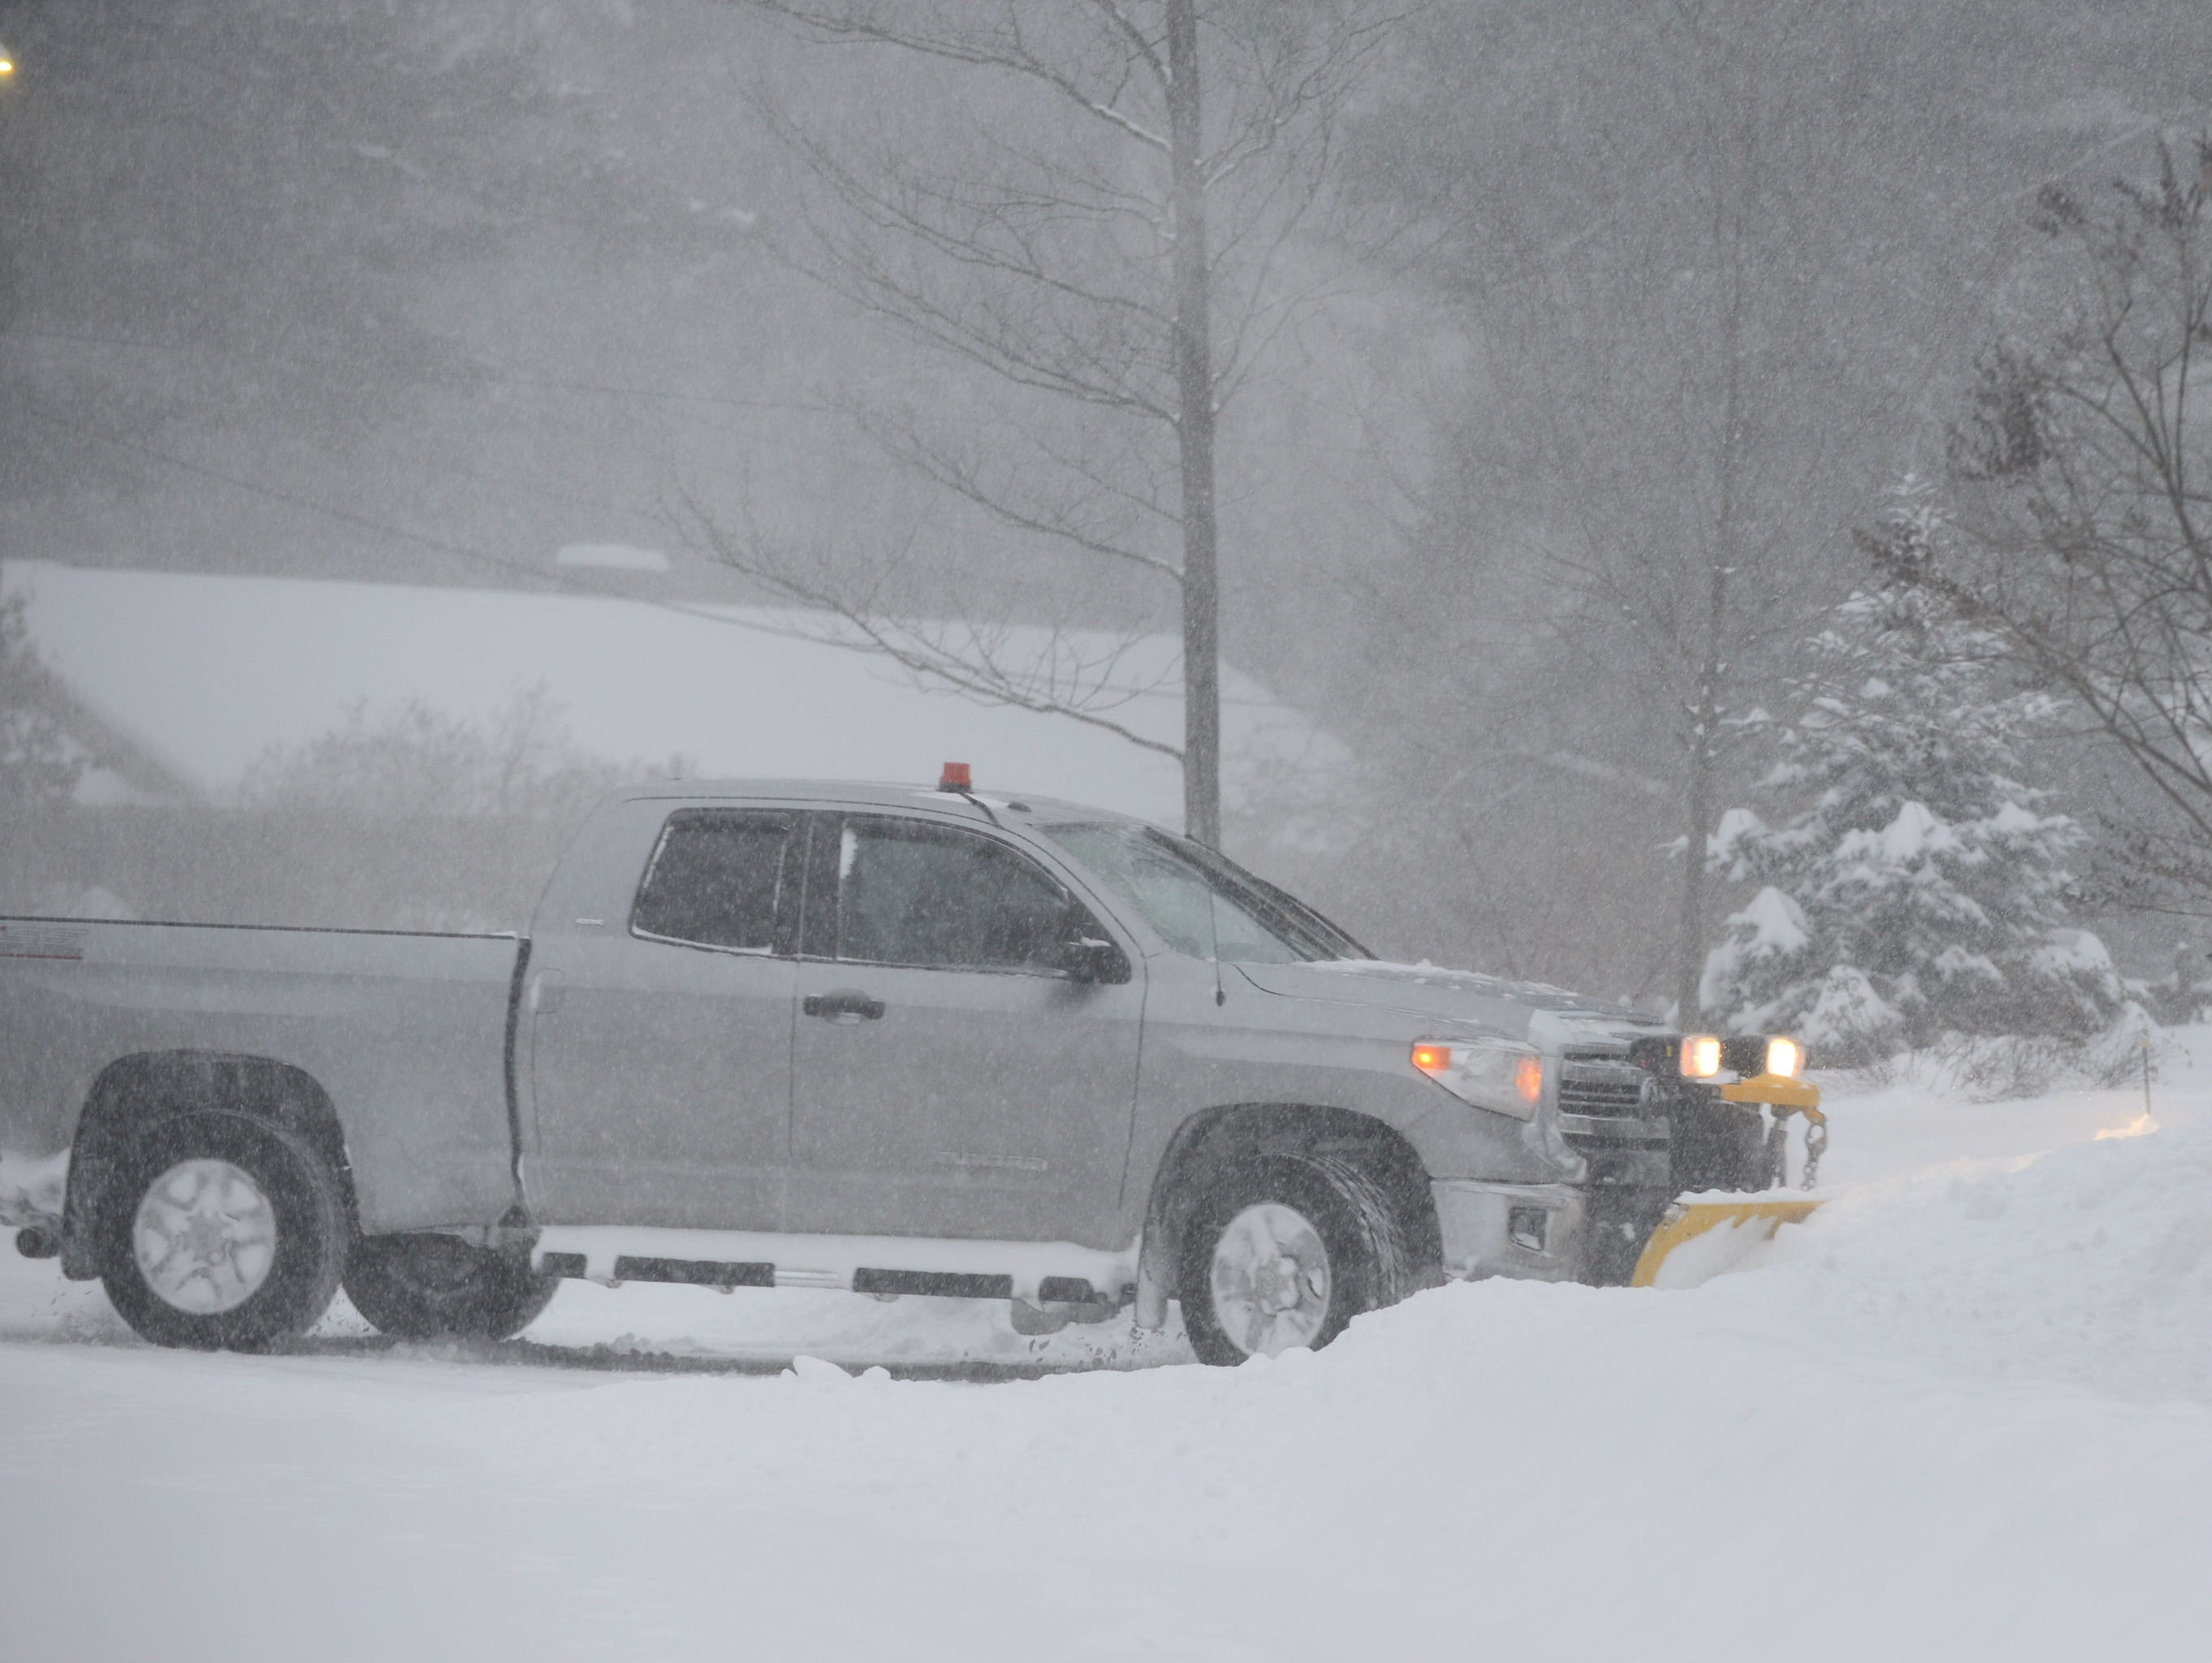 A snowplow clears a drives on Brewer Parkway Sunday morning, Jan. 20, 2019. The winter storm, dubbed Harper by the Weather Channel, swept into Vermont Saturday night and was expected drop as much as 24 inches of snow by Sunday evening.